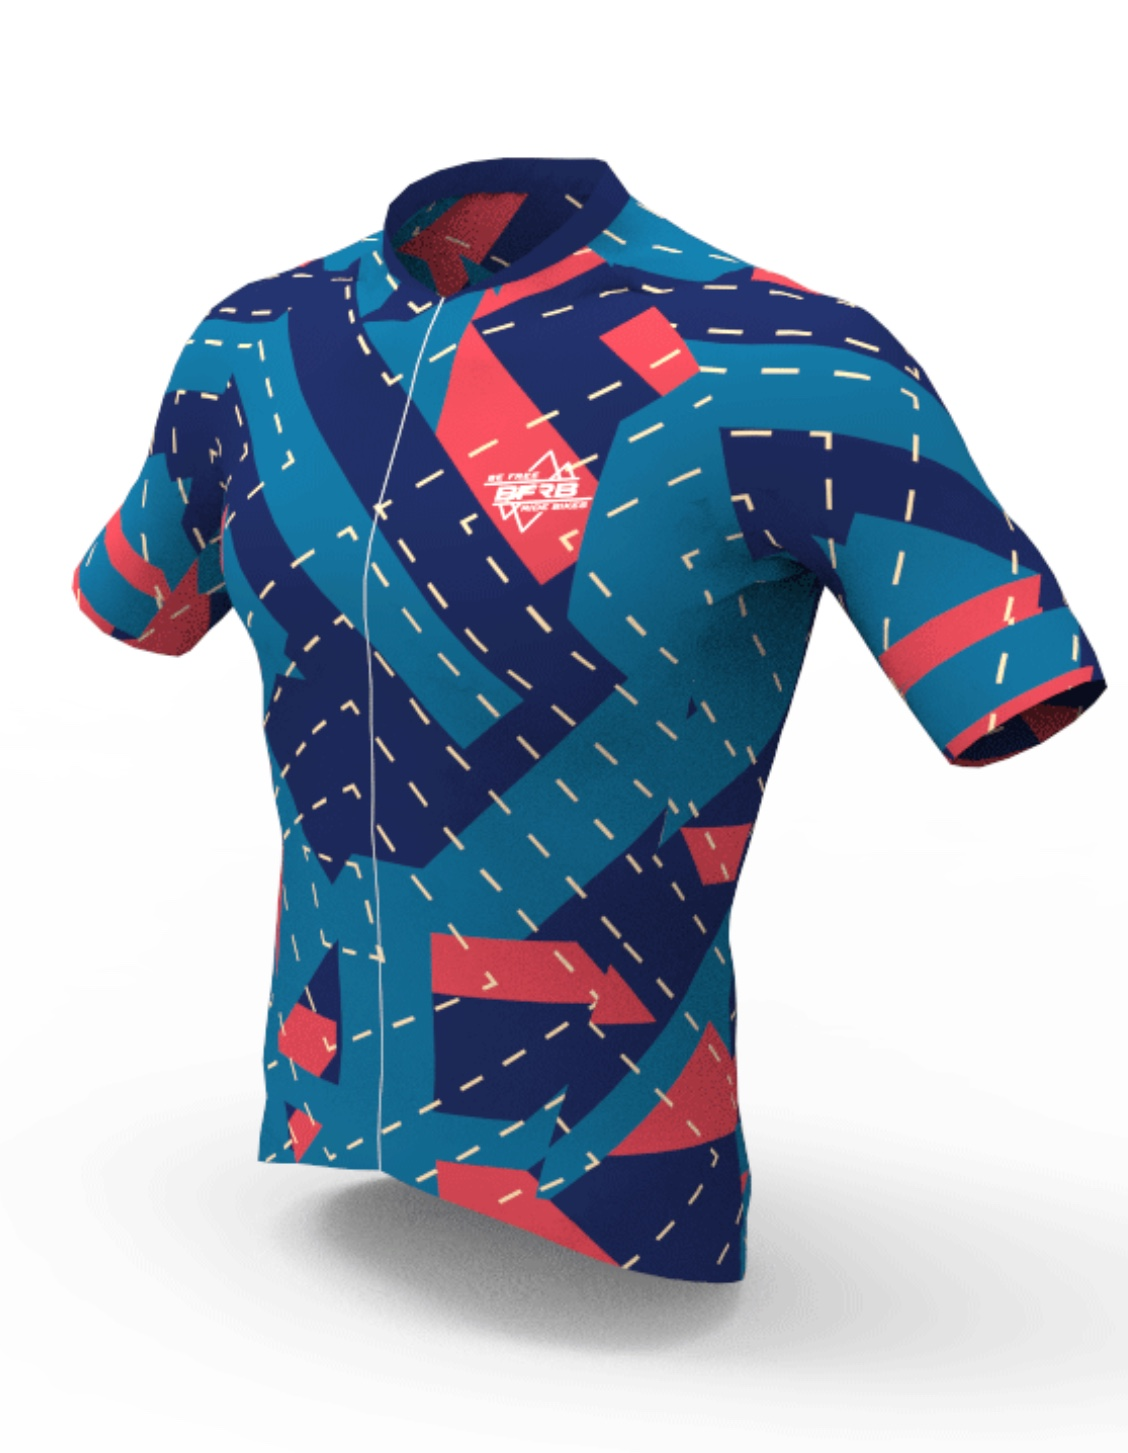 92c5af56b Tremble Jersey – BFRB Cycling